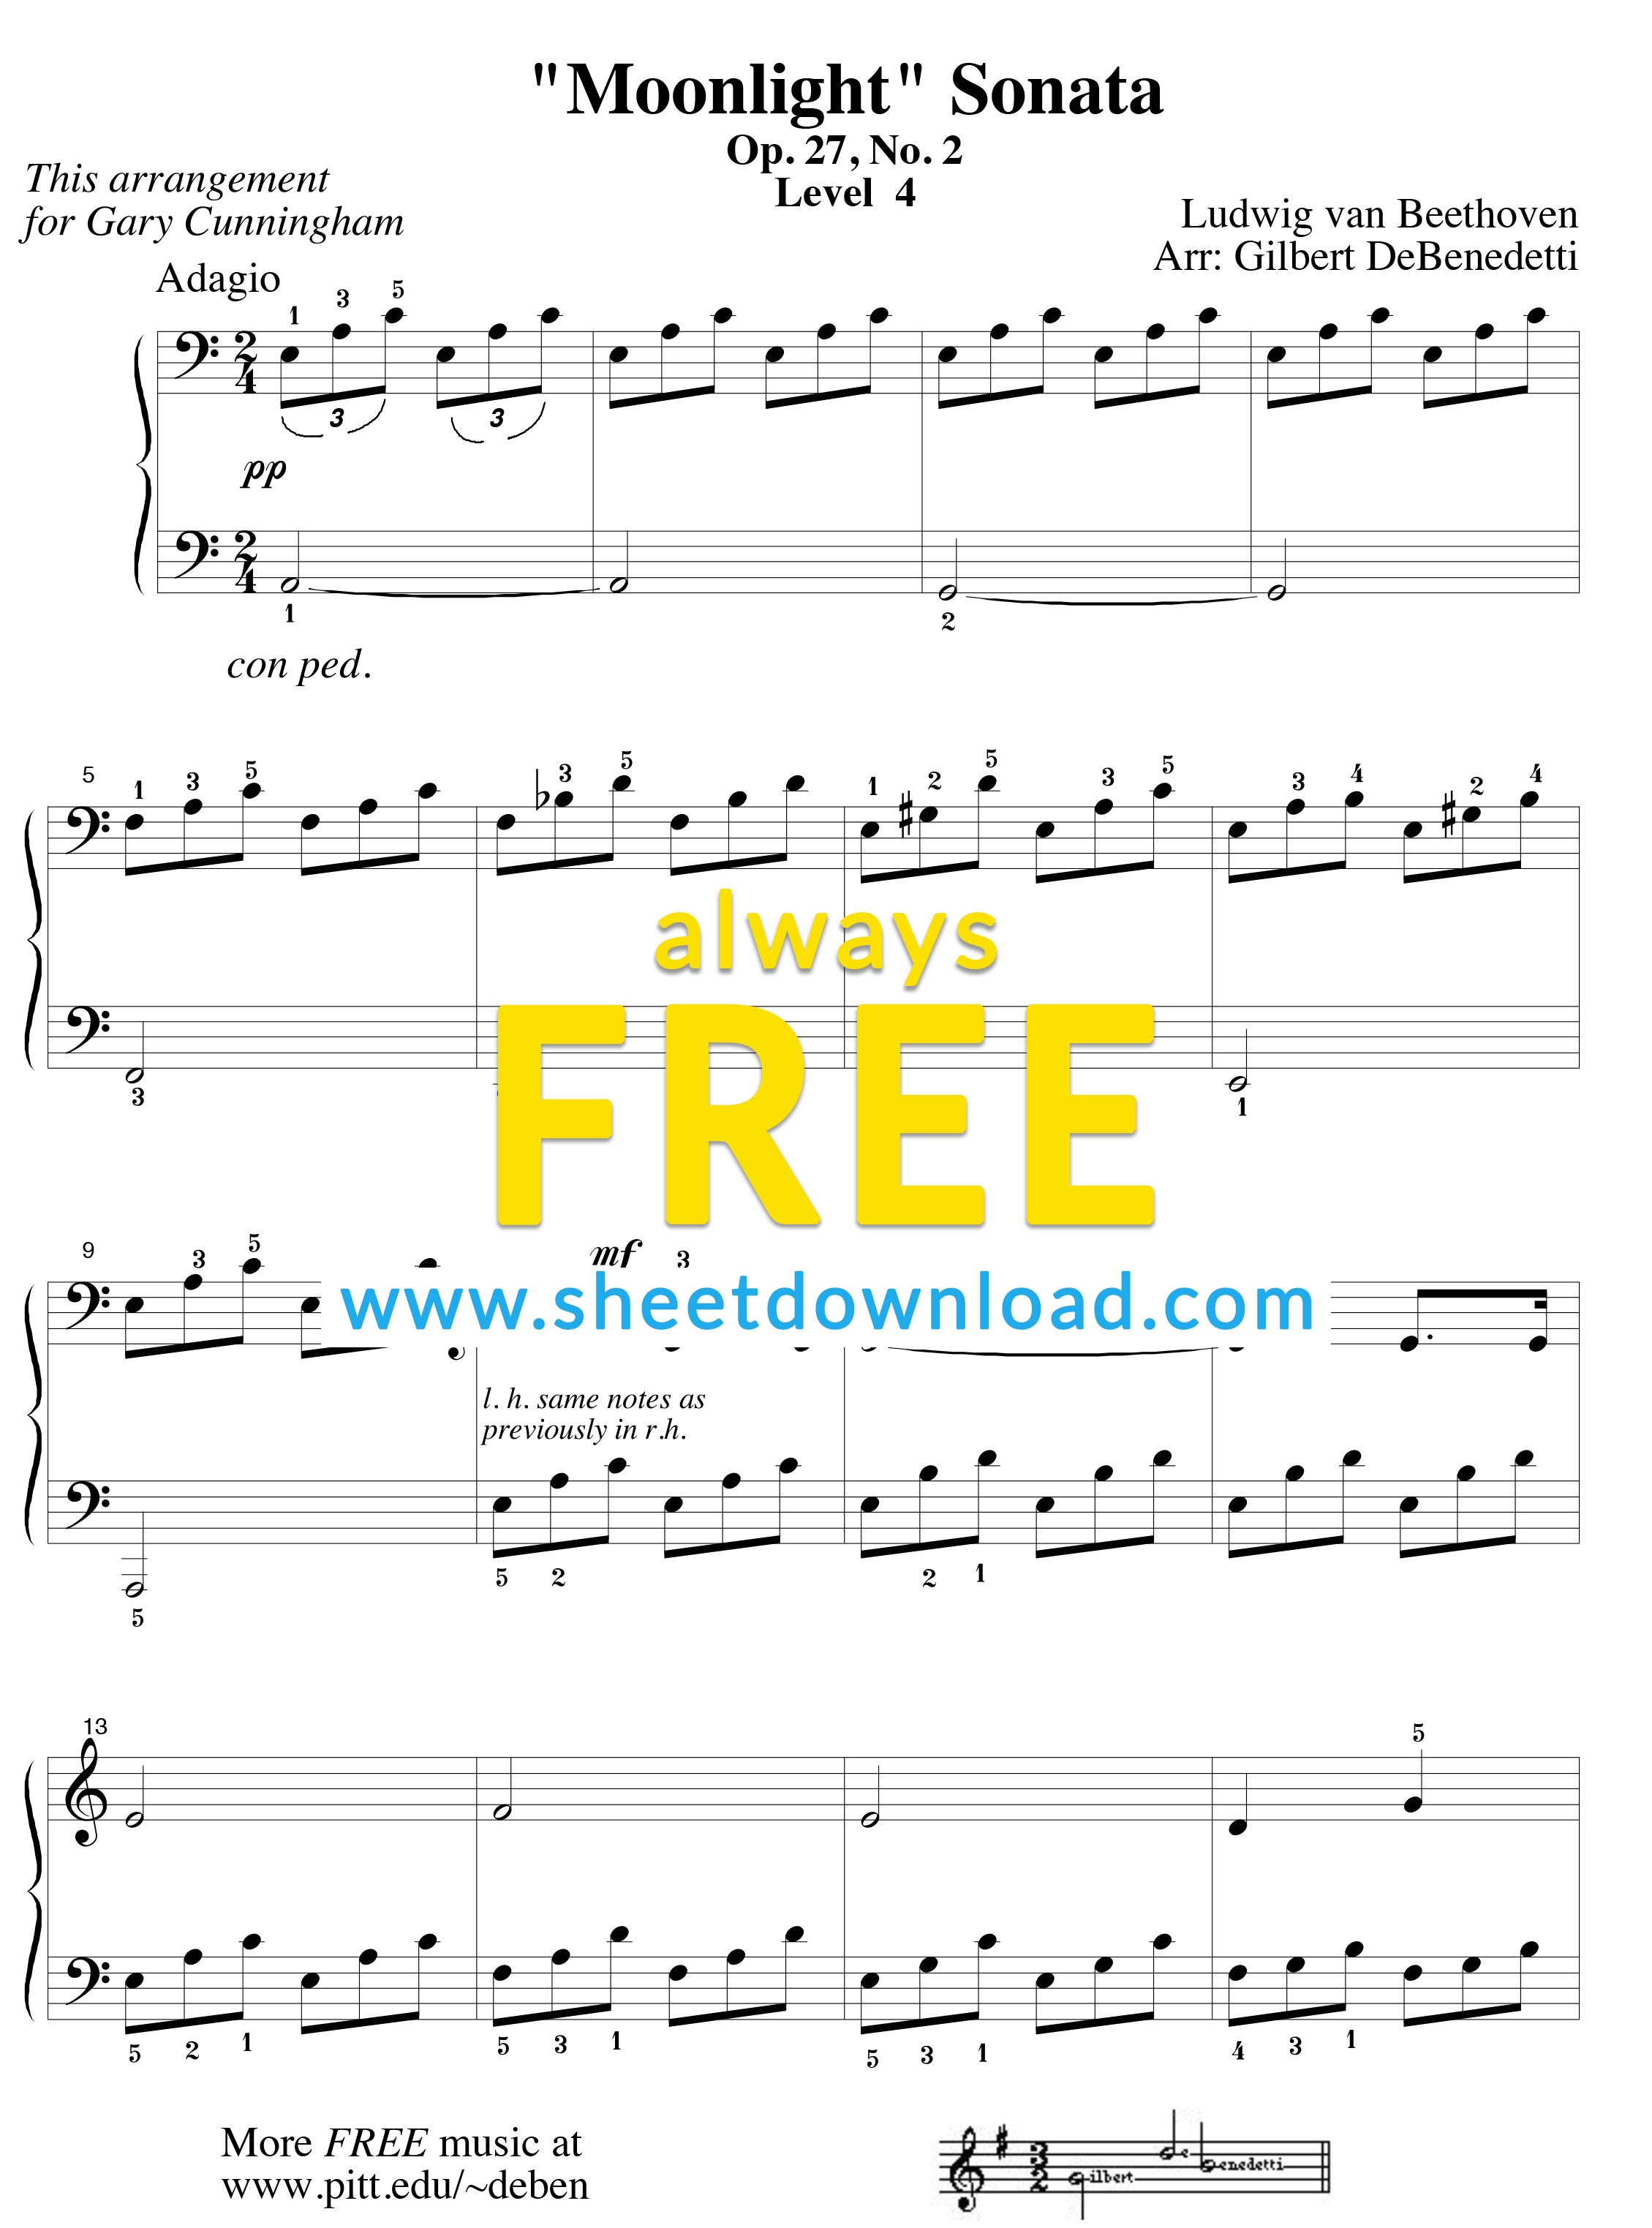 Top 100 Popular Piano Sheets Downloaded From Sheetdownload - Free Printable Piano Pieces